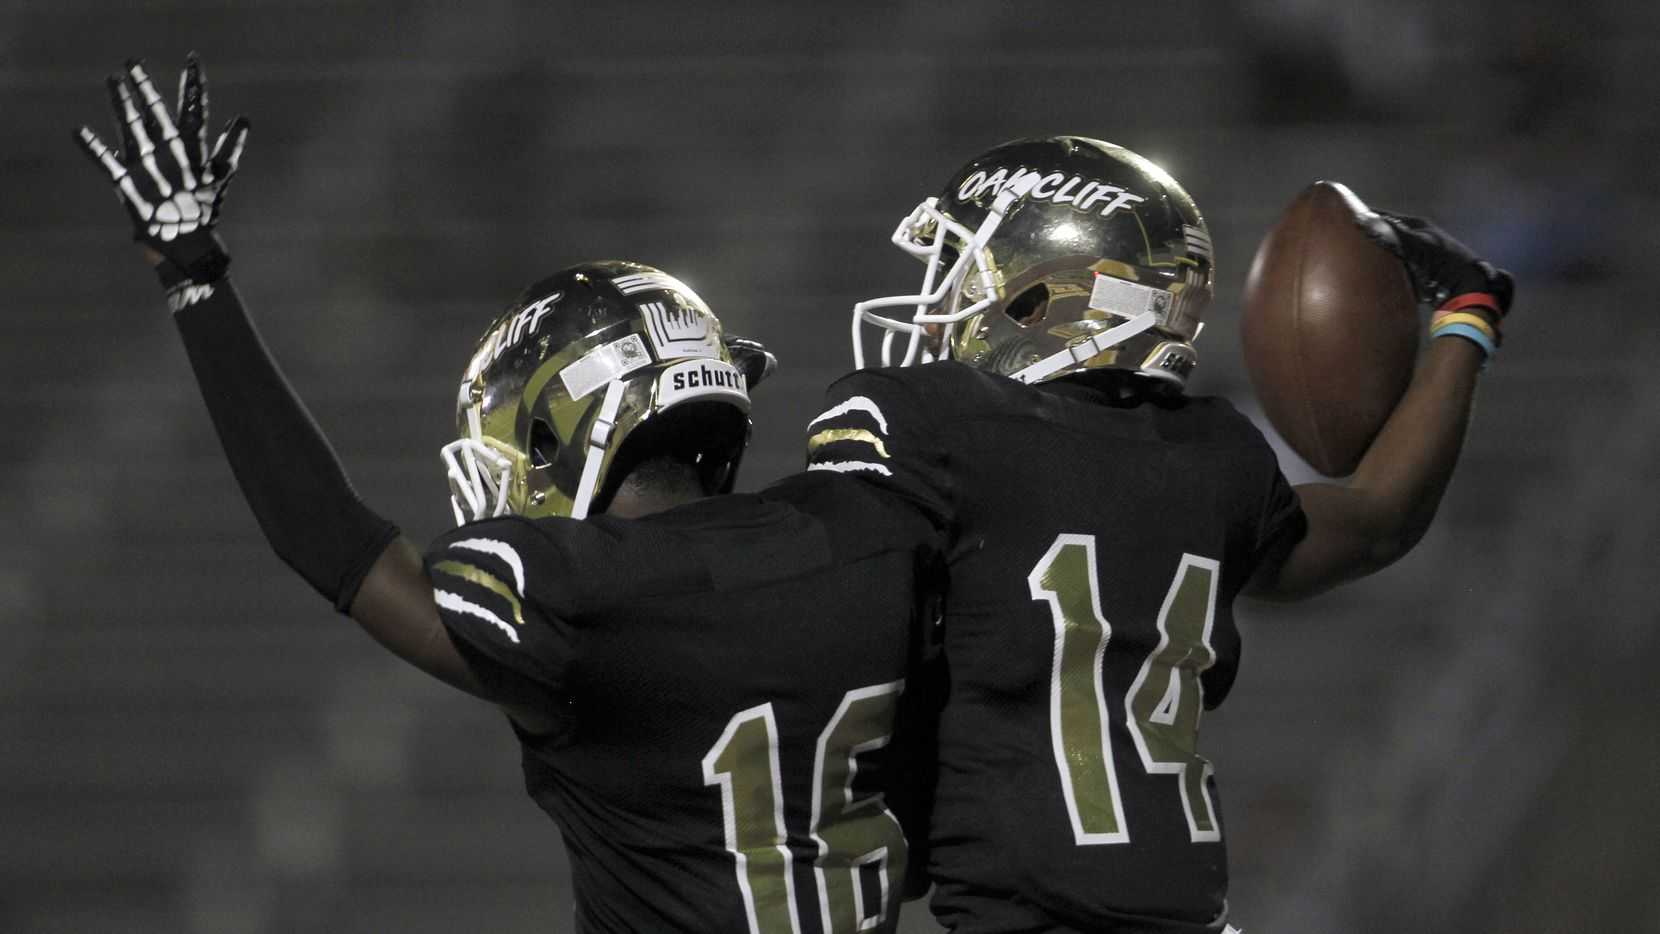 South Oak Cliff receiver Corinthean Coleman (14), right, celebrates with teammate Horace Bradshaw (16) after Coleman scored on a long receiving touchdown during second quarter action against Dallas Hillcrest. The two DISD teams played their District 6-5A Division ll football game at Kincaide Stadium in Dallas on September 17, 2021.